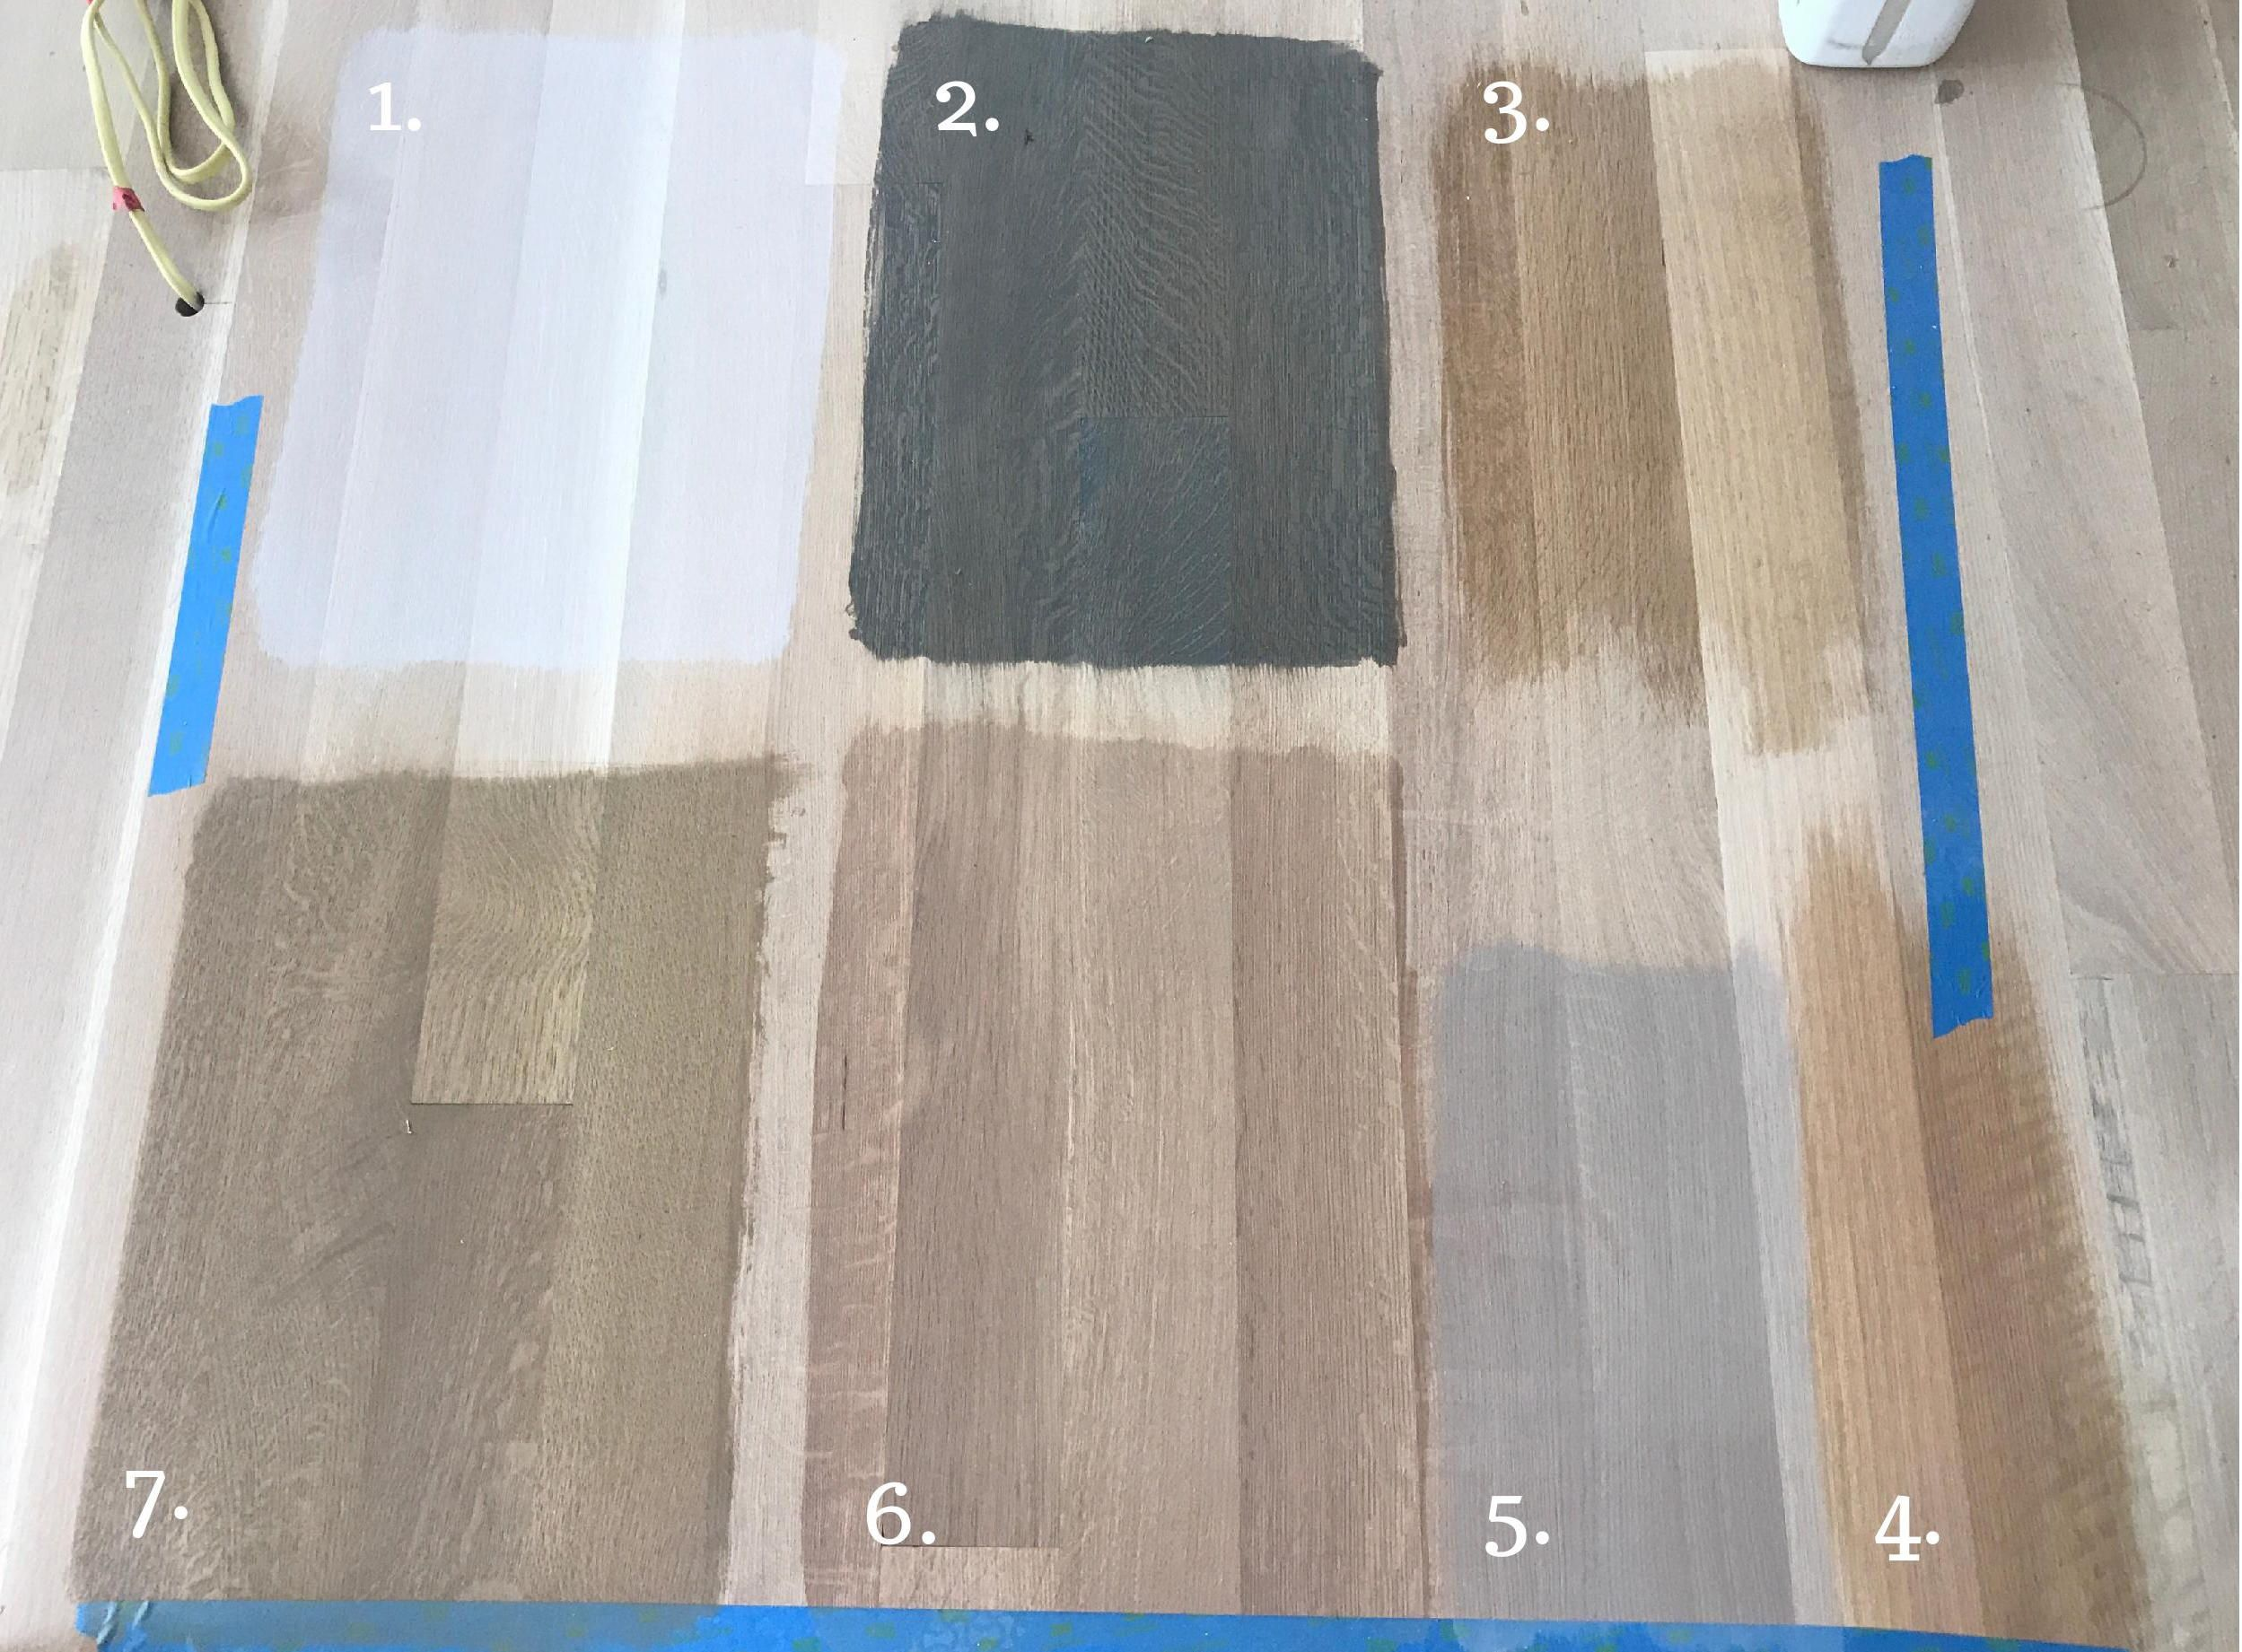 Time To Choose A Stain Color For White Oak Flooring White Oak Hardwood Floors Floor Stain Colors Oak Floor Stains